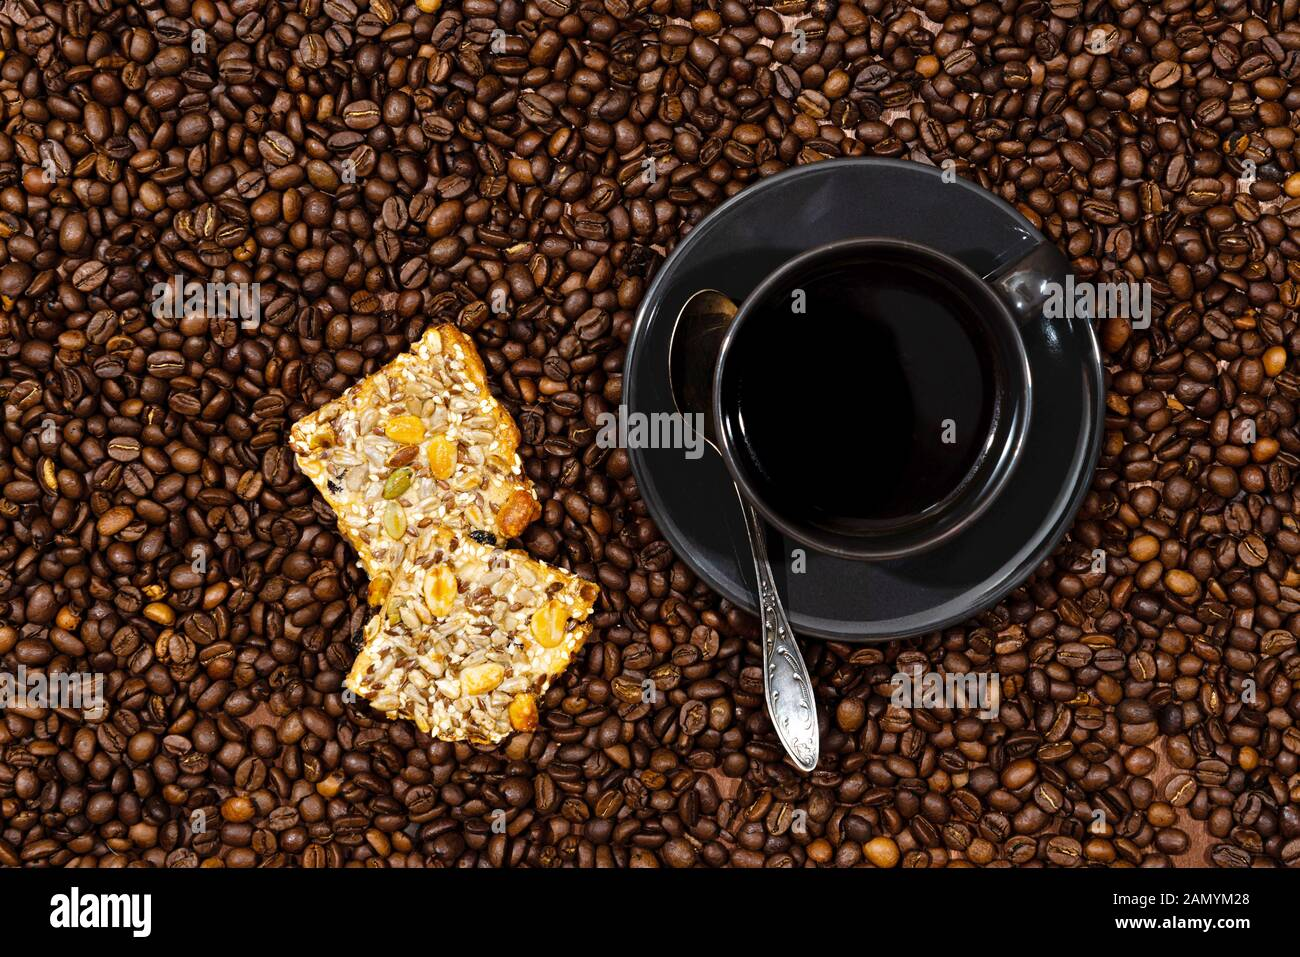 White coffee mug and cookies on the coffee beans background - image Stock Photo